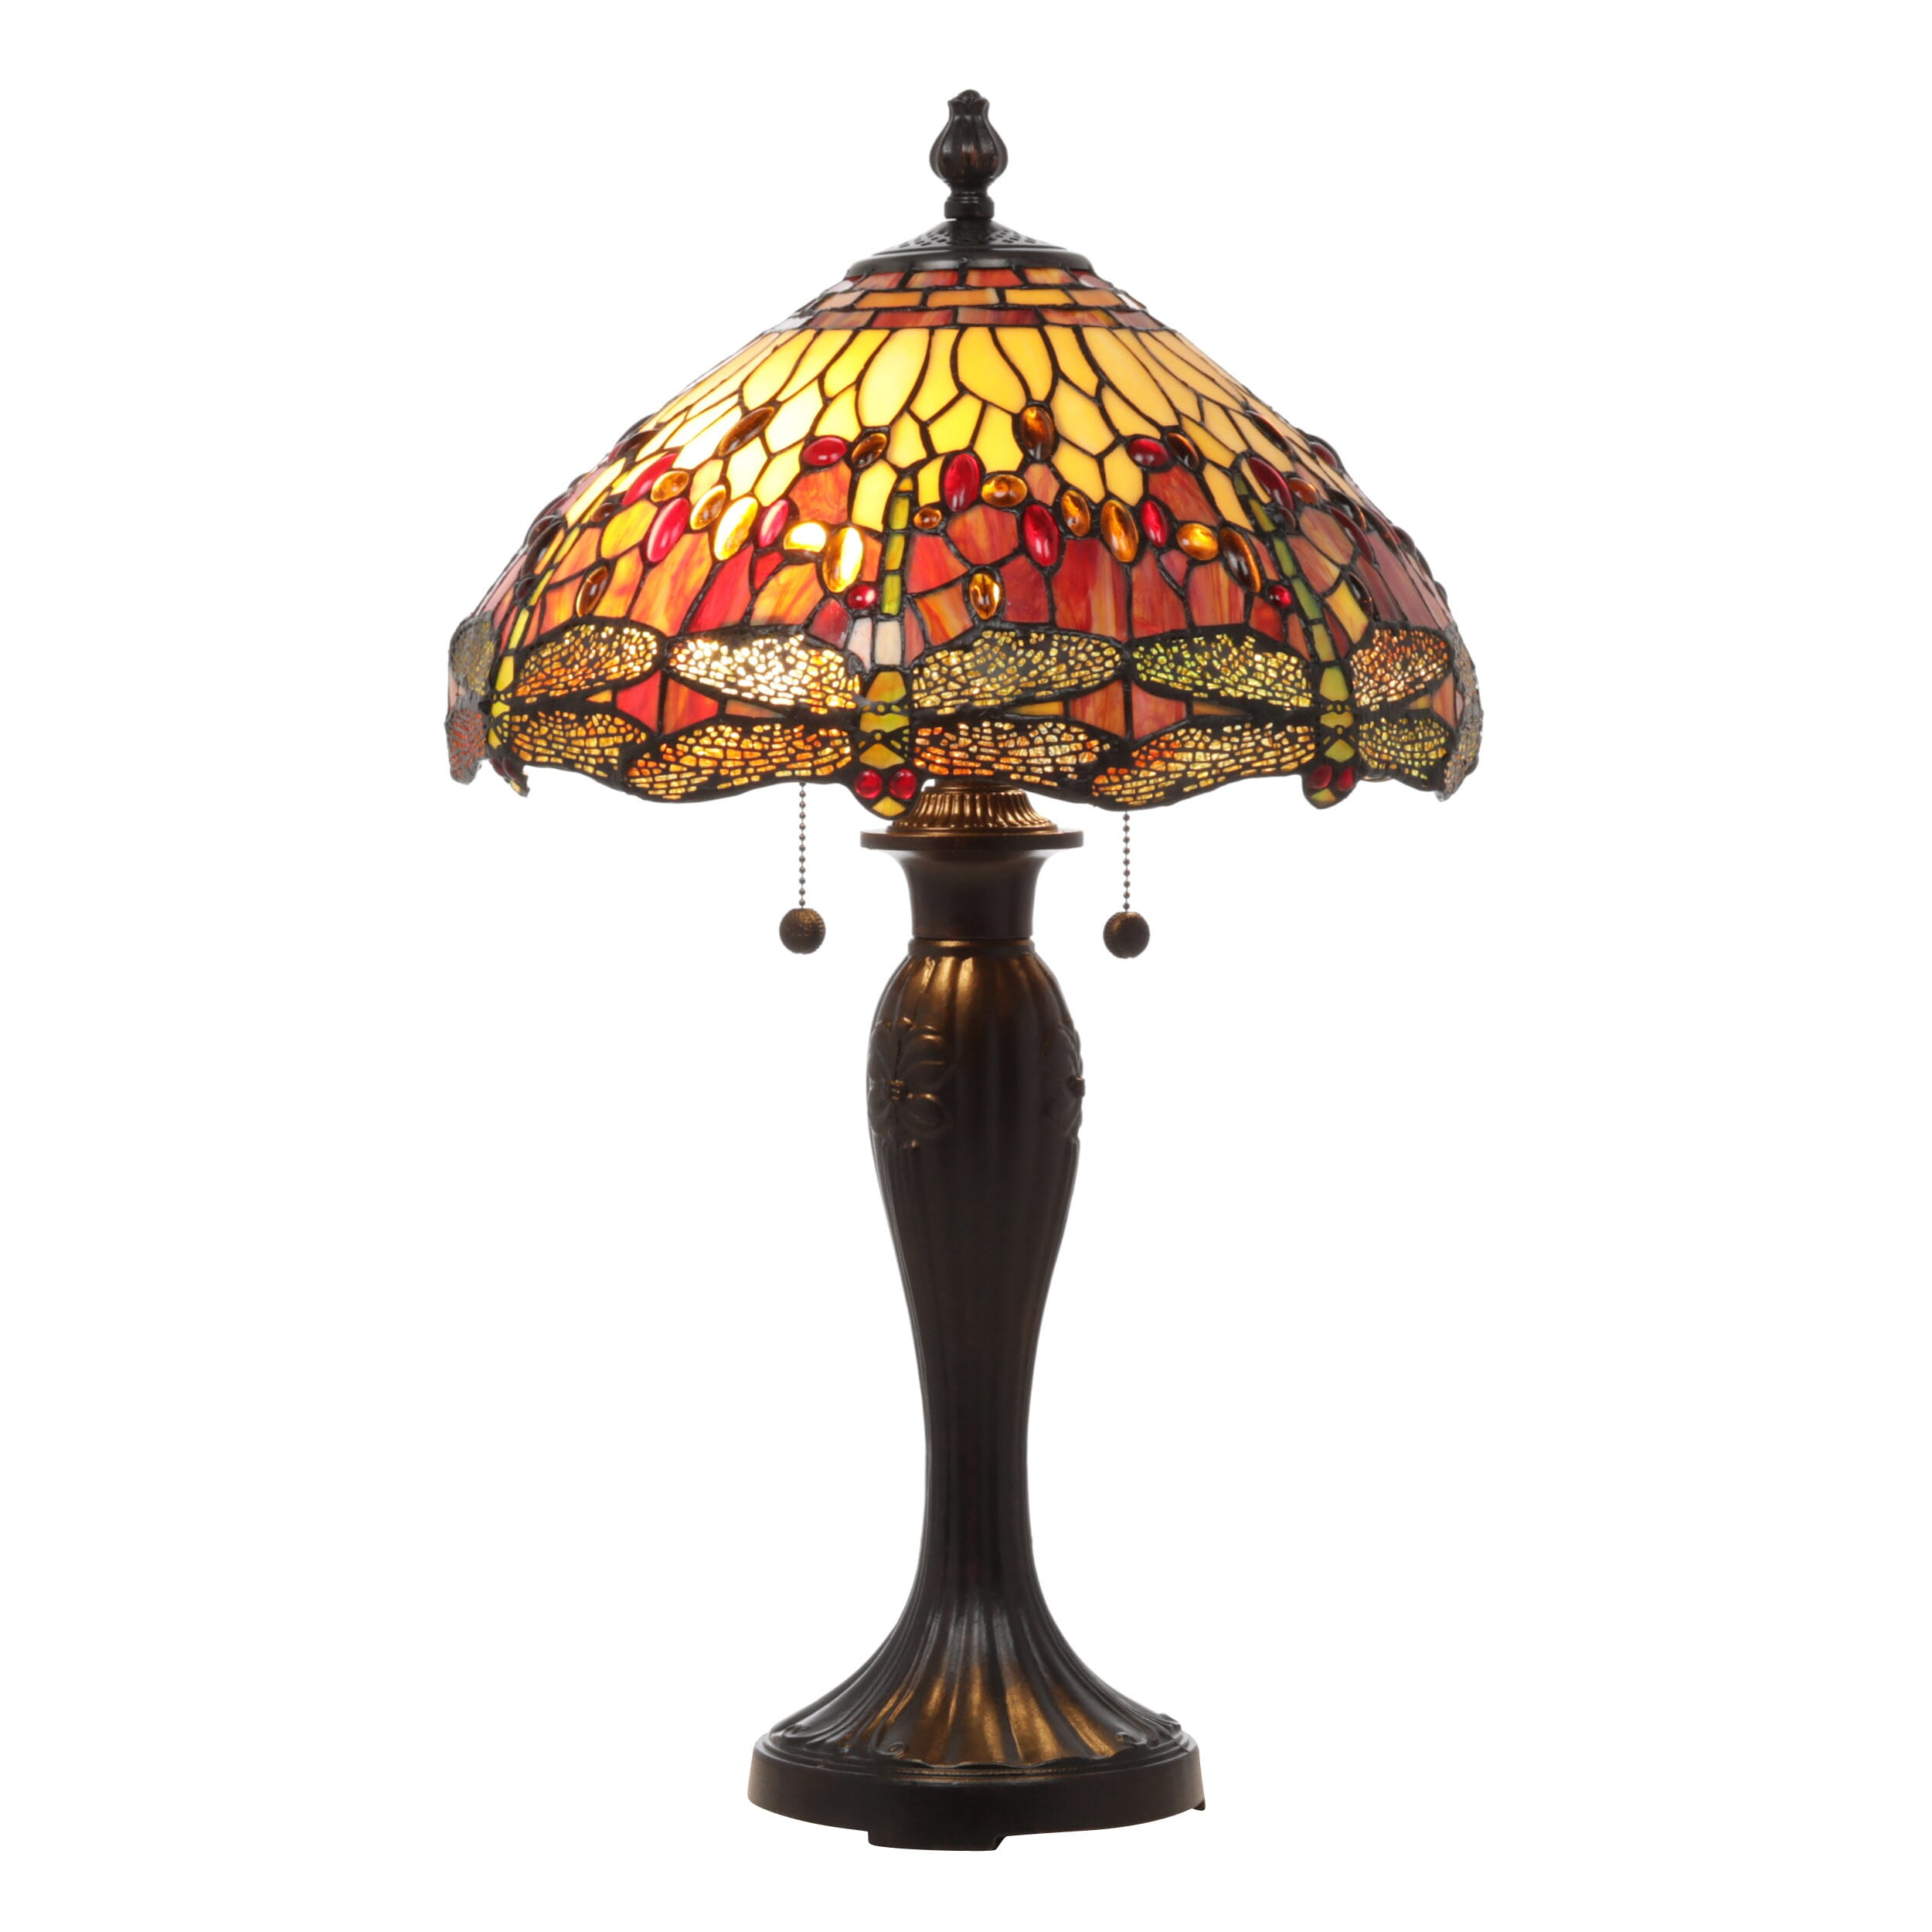 Table lamp featuring a durable stained glass shade